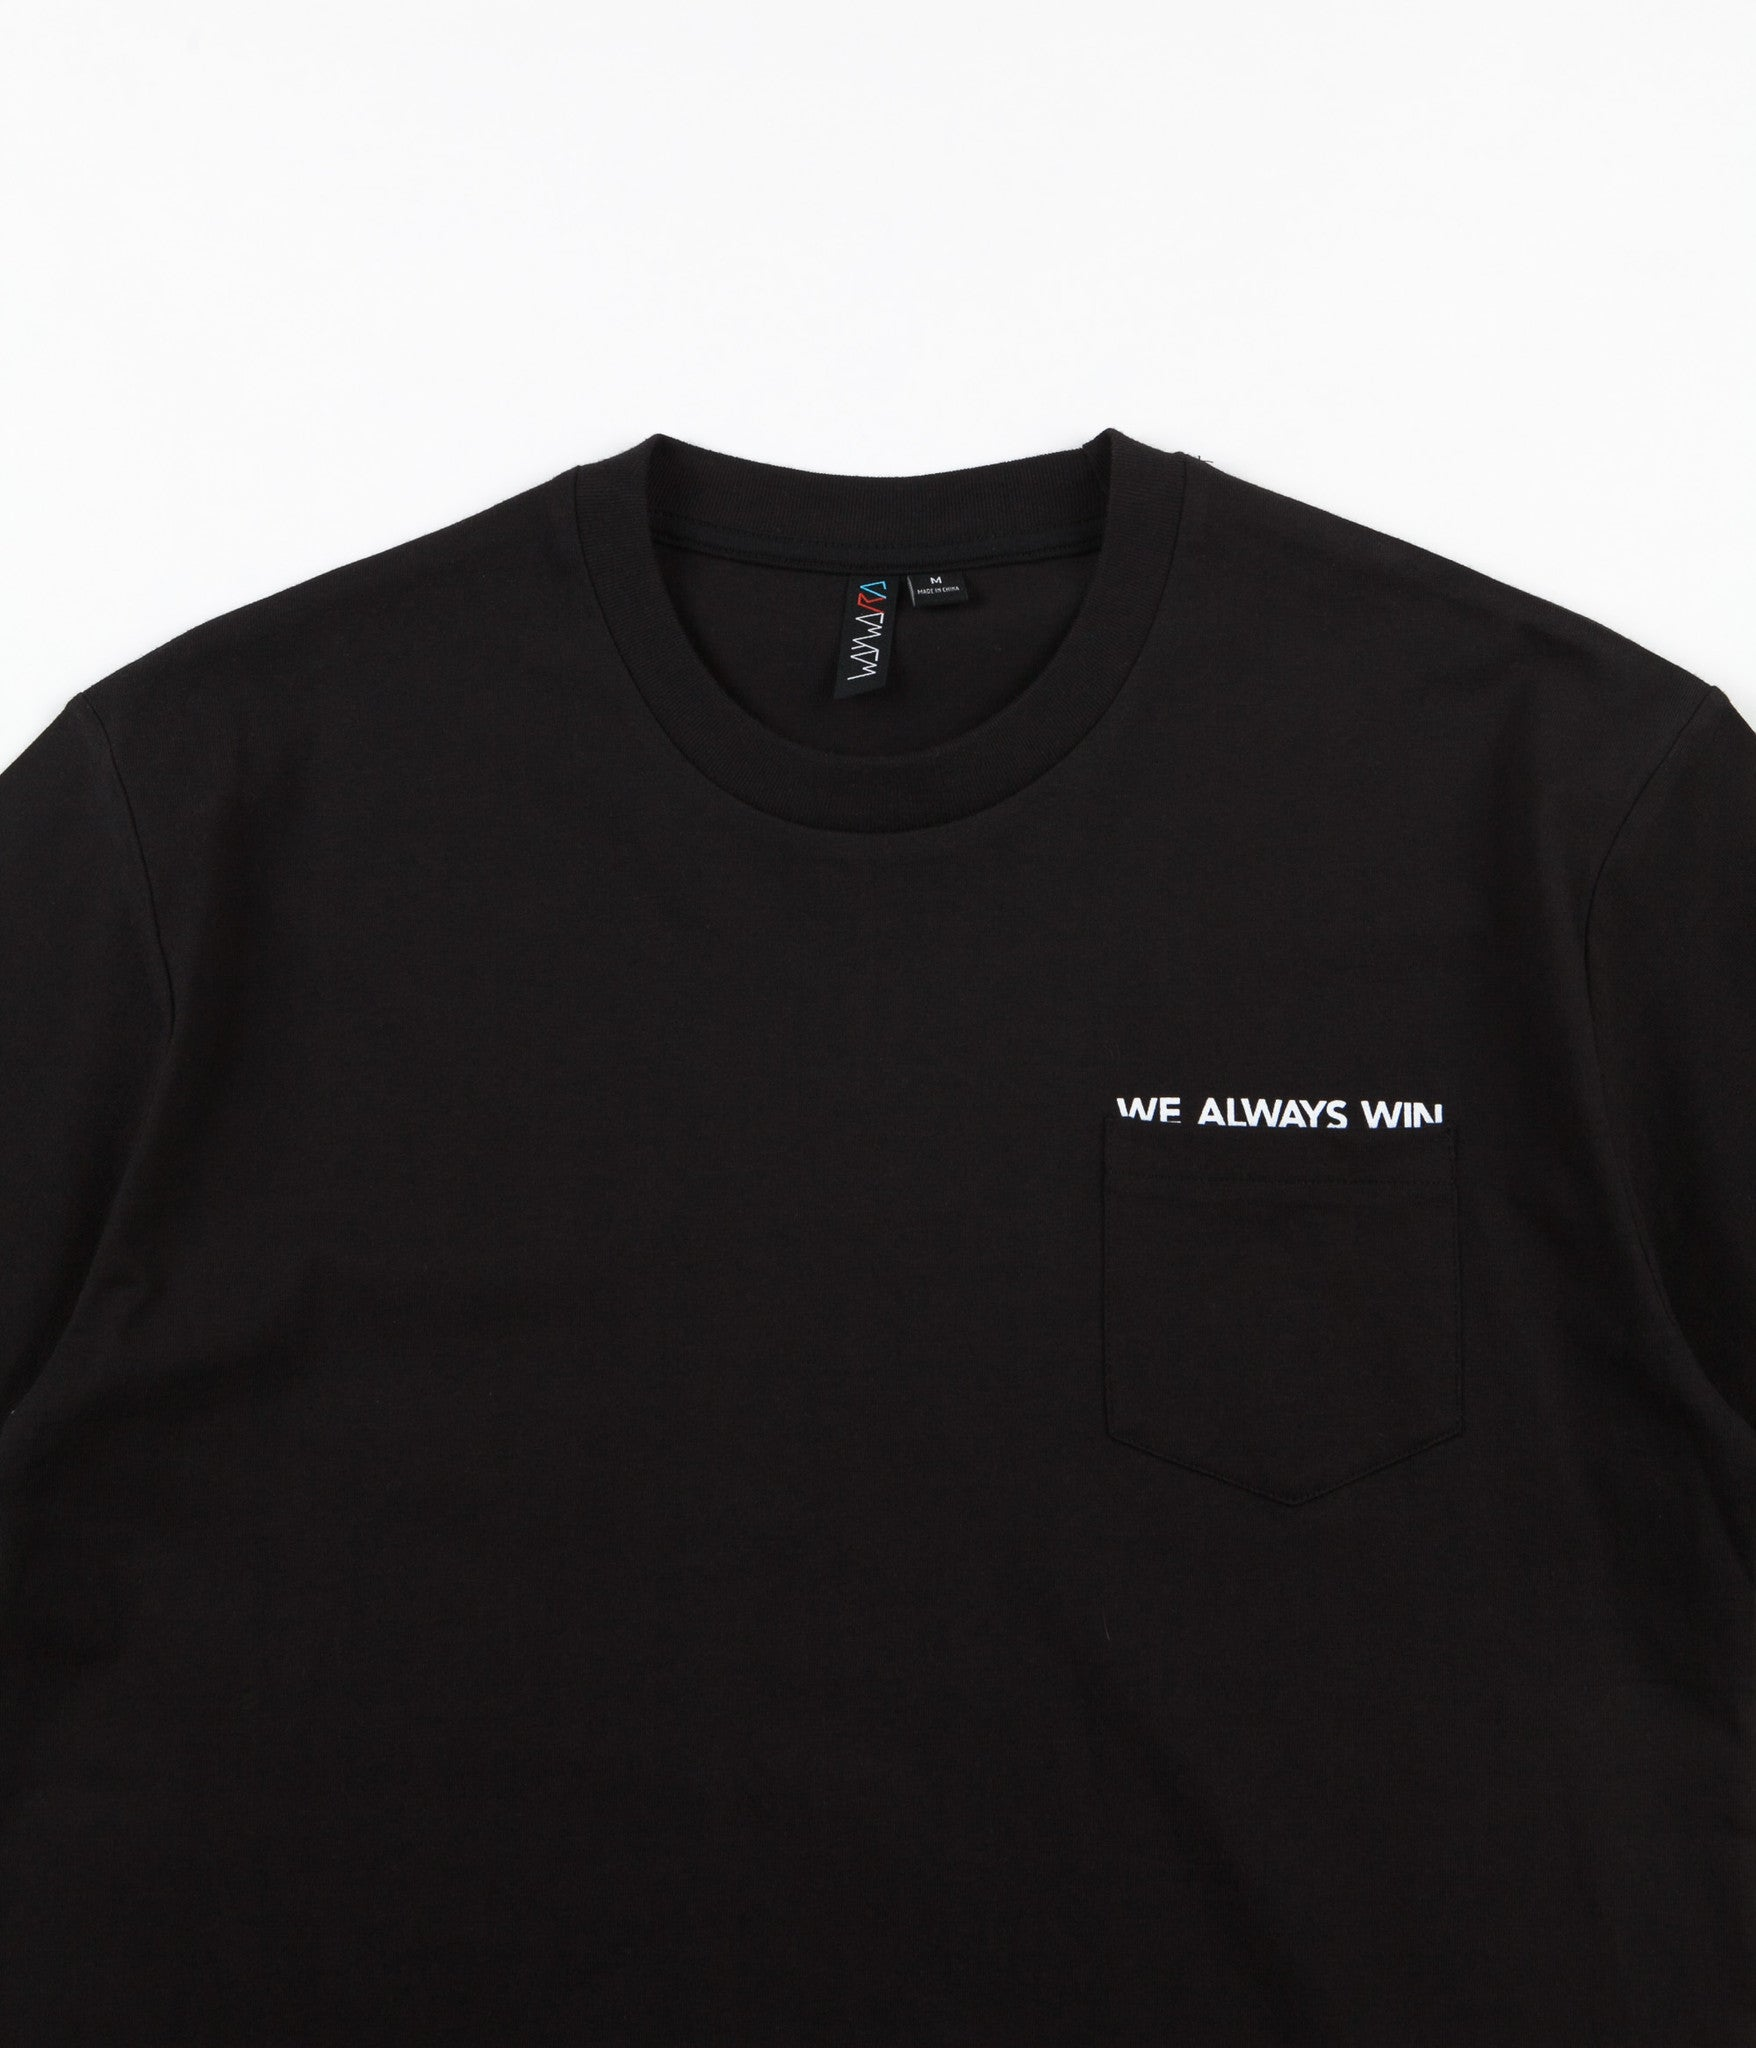 Wayward V-12 Pocket T-Shirt - Black